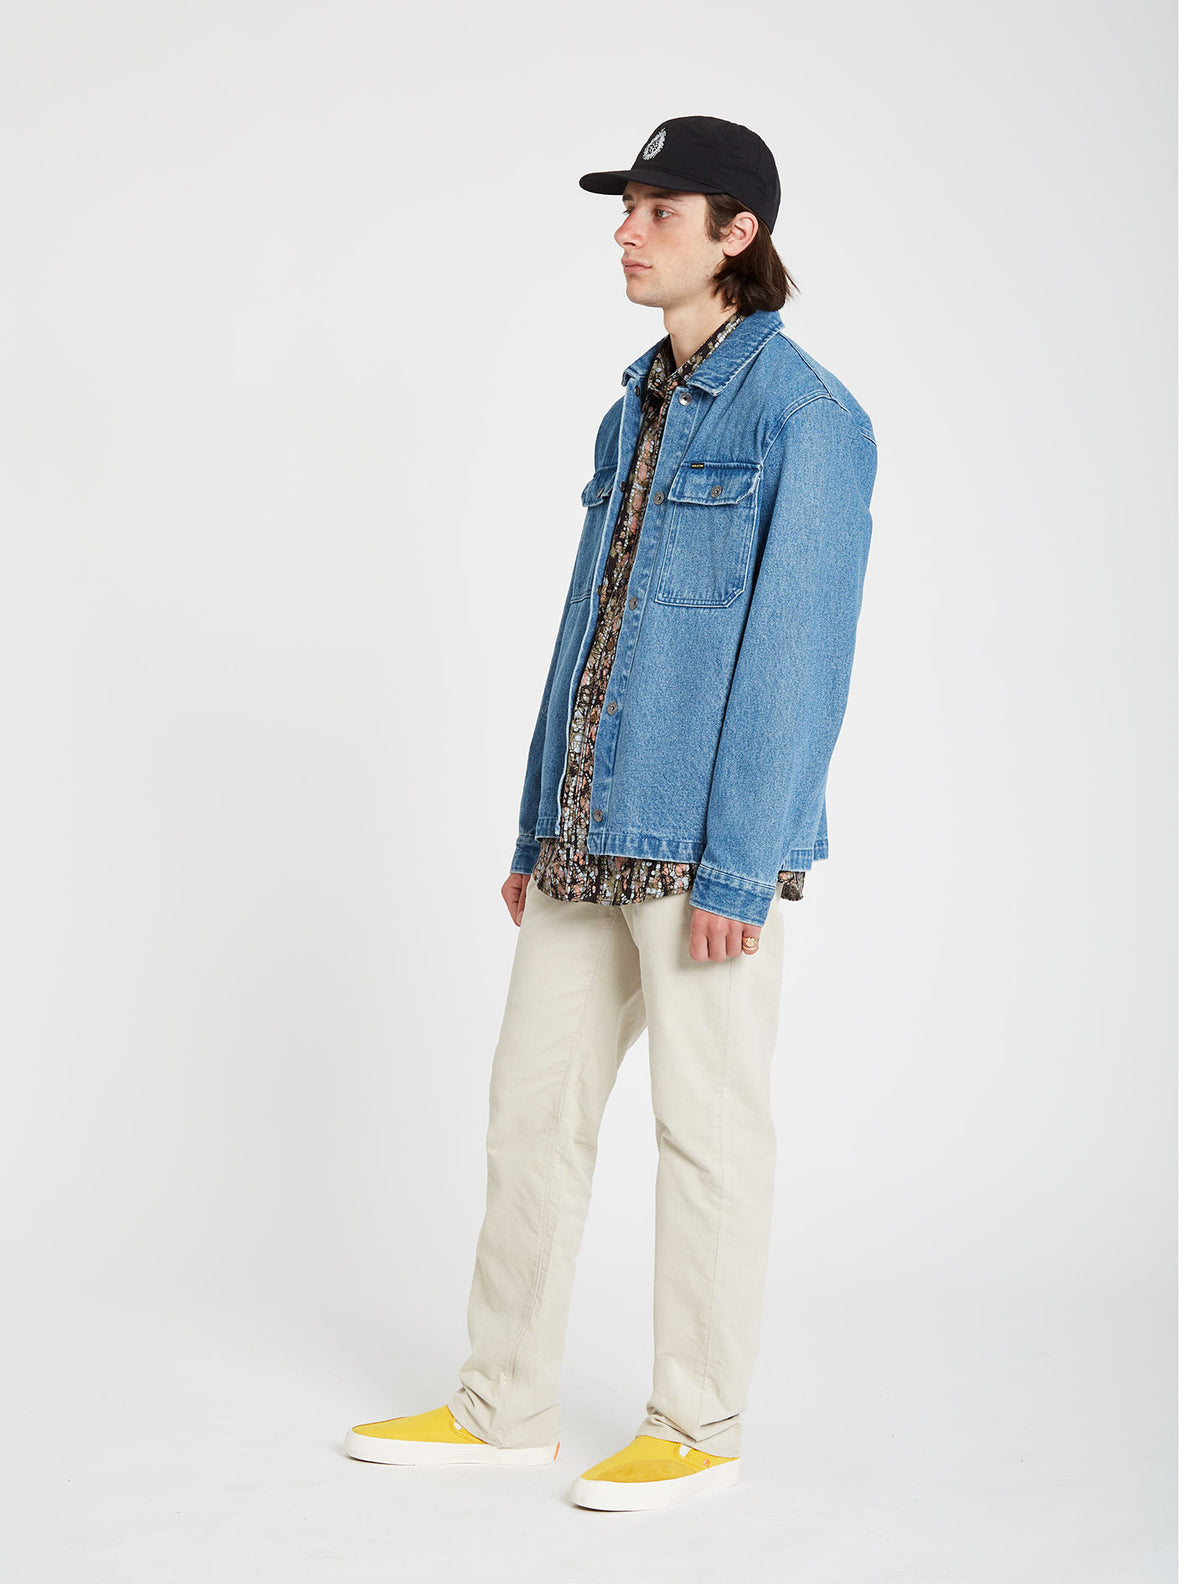 Likeaton Jacket - Denim (A1512105_DEN) [21]